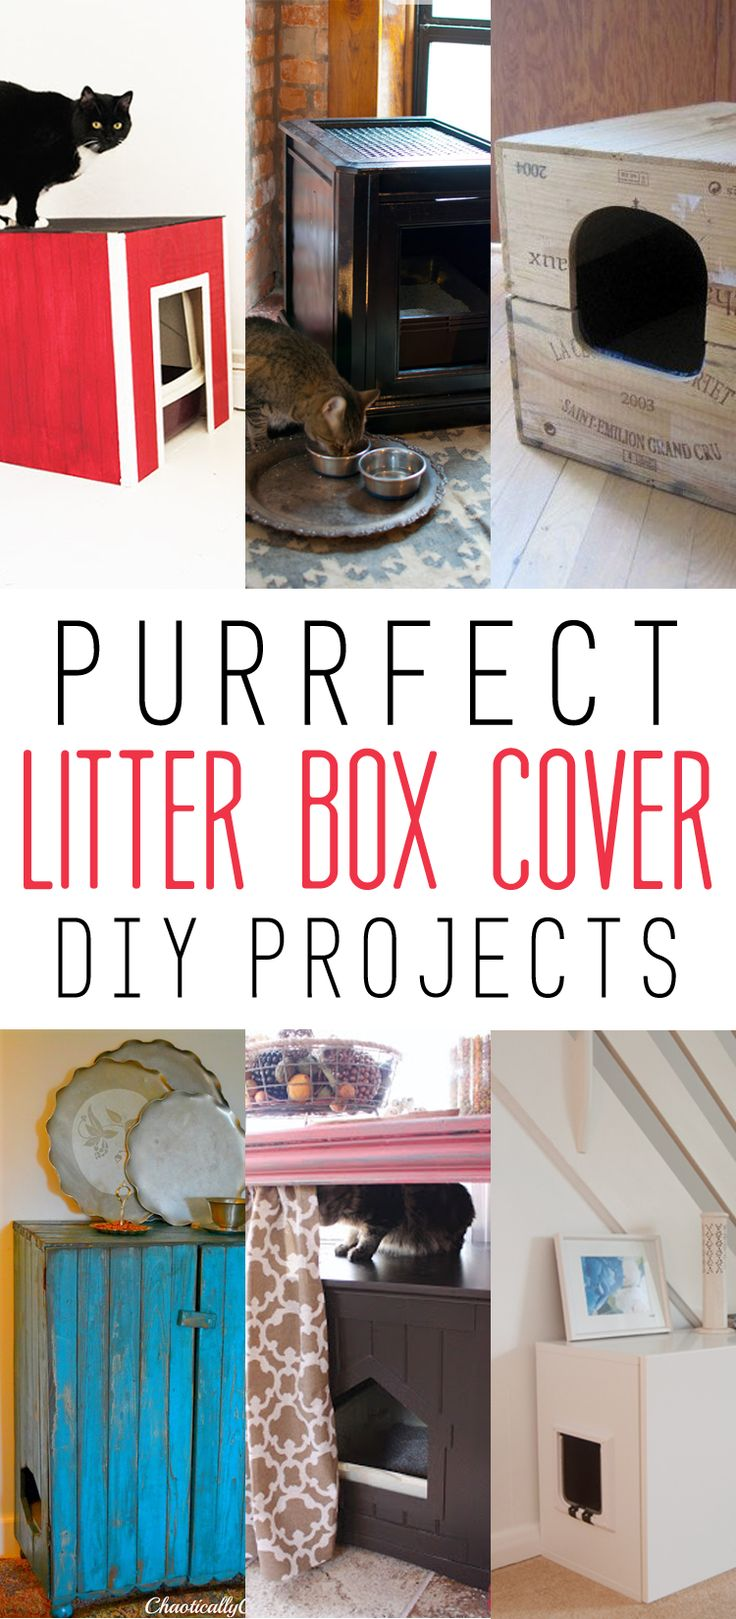 Purrfect Litter Box Cover DIY Projects - The Cottage Market